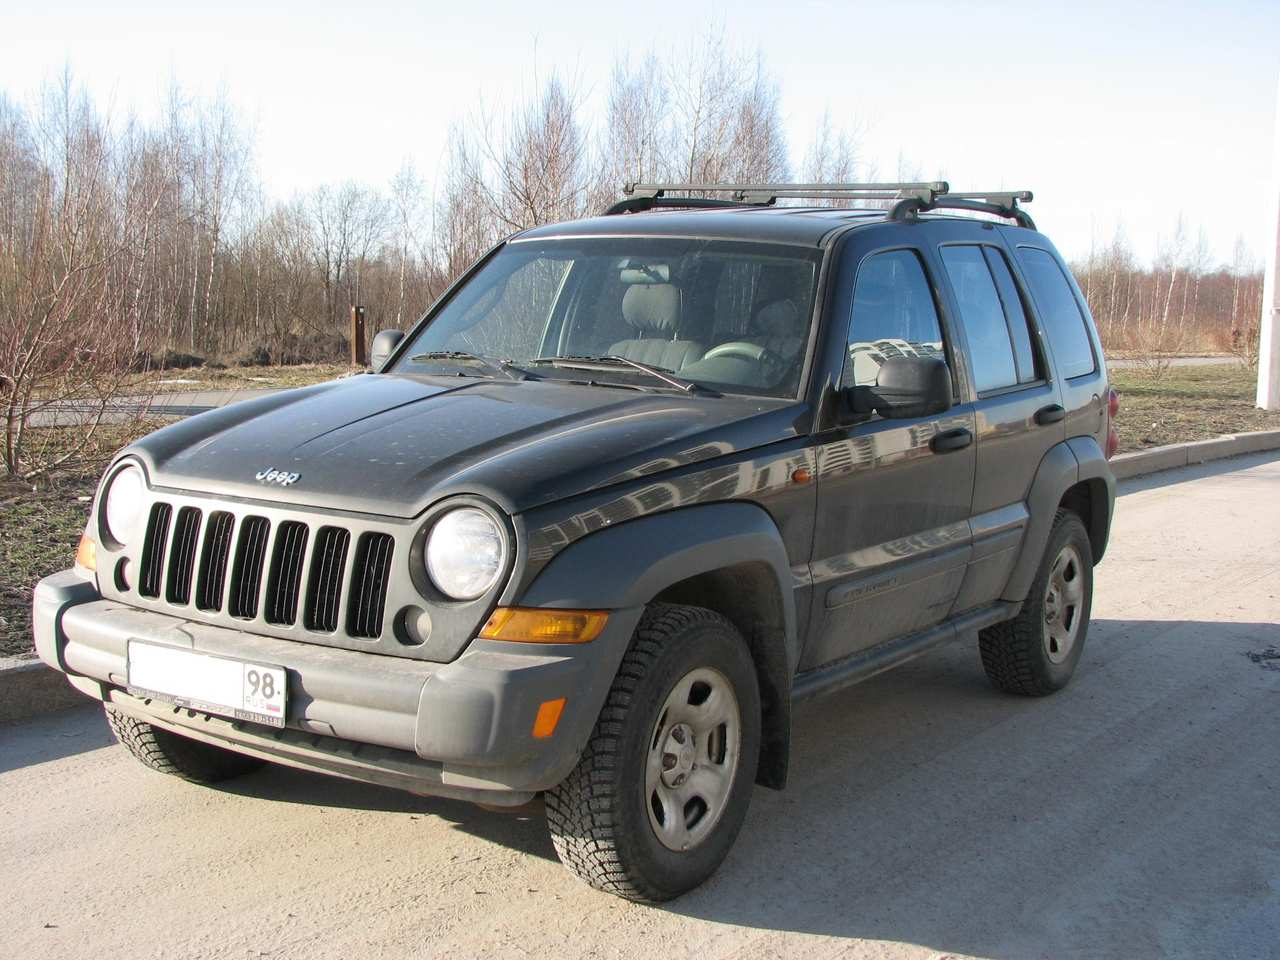 2008 jeep liberty 3rd row seat autos post. Black Bedroom Furniture Sets. Home Design Ideas